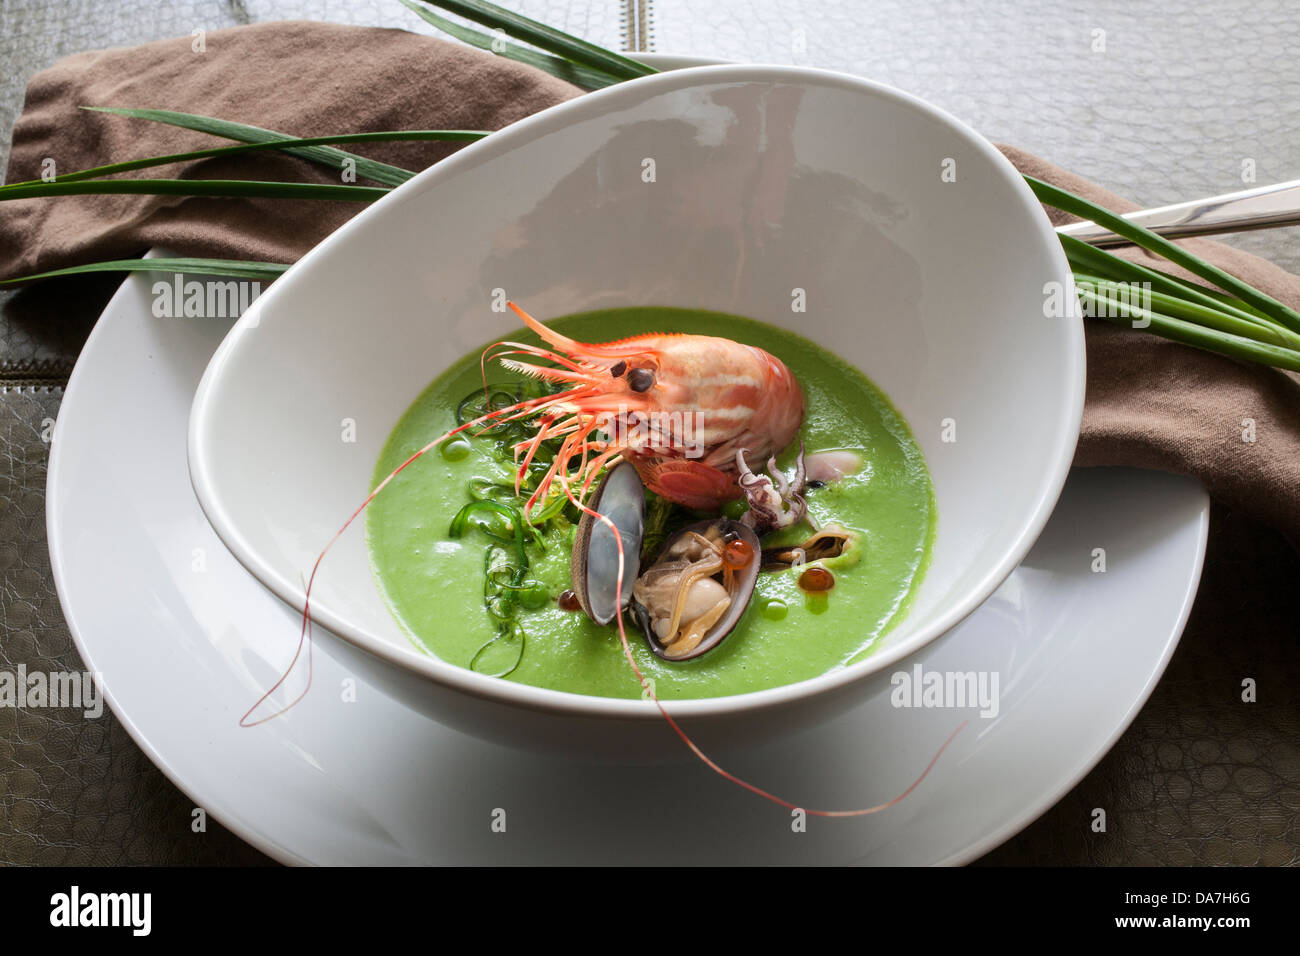 prawn seafood dish in a bowl shrimp soup - Stock Image